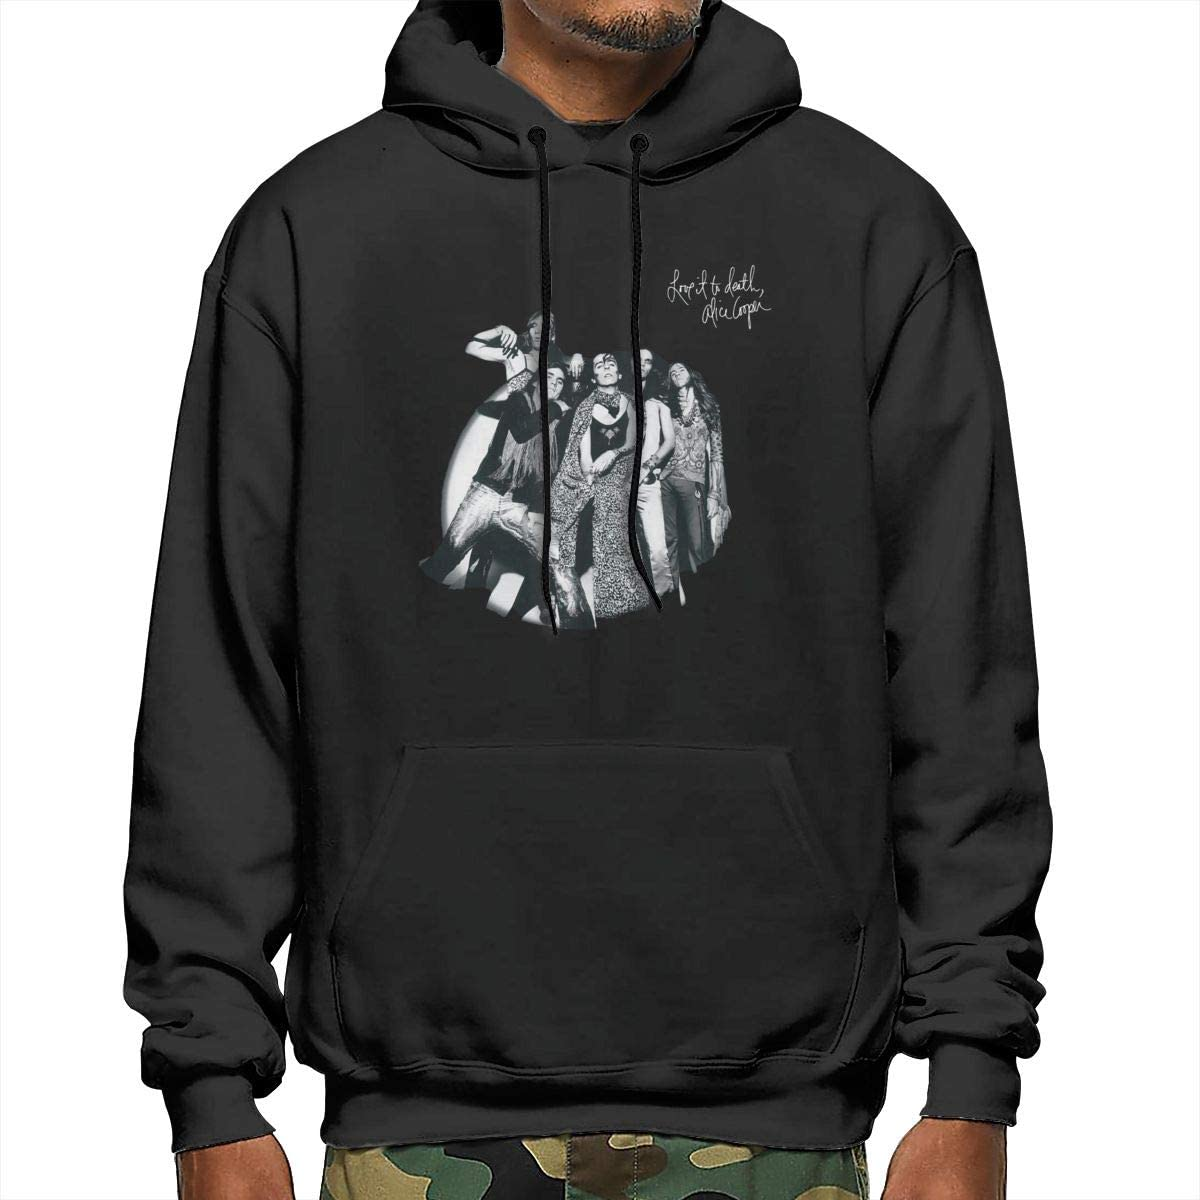 Alice Cooper Love It to Death Mans Fashion Athletic Casual Hoodies Long Sleeves Loose Fit Sweatshirt with Kangaroo Pocket